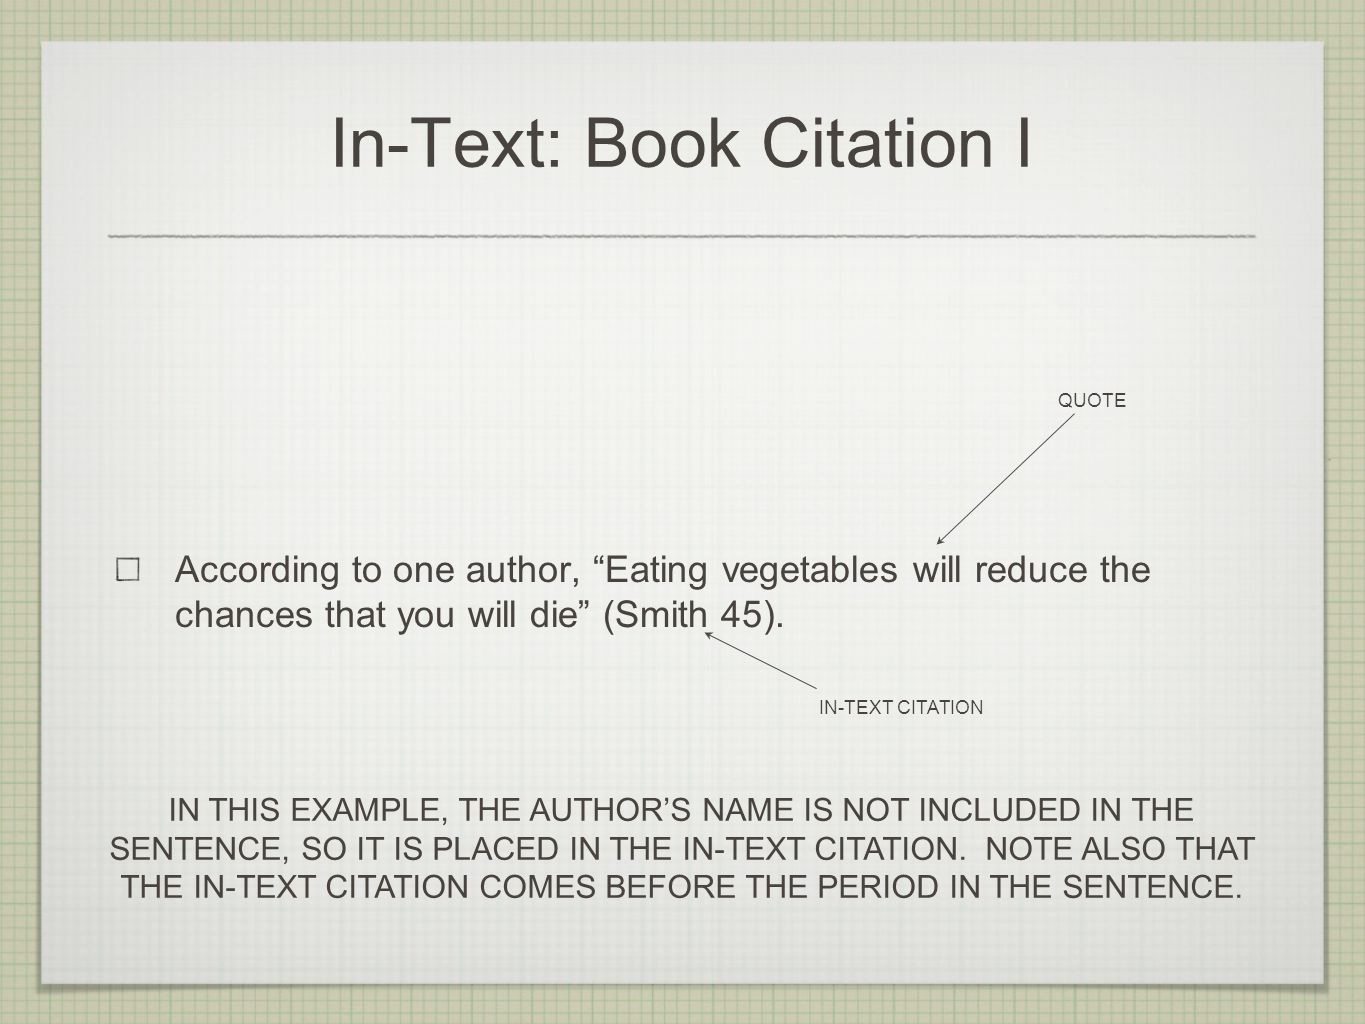 In-Text: Book Citation I According to one author, Eating vegetables will reduce the chances that you will die (Smith 45).